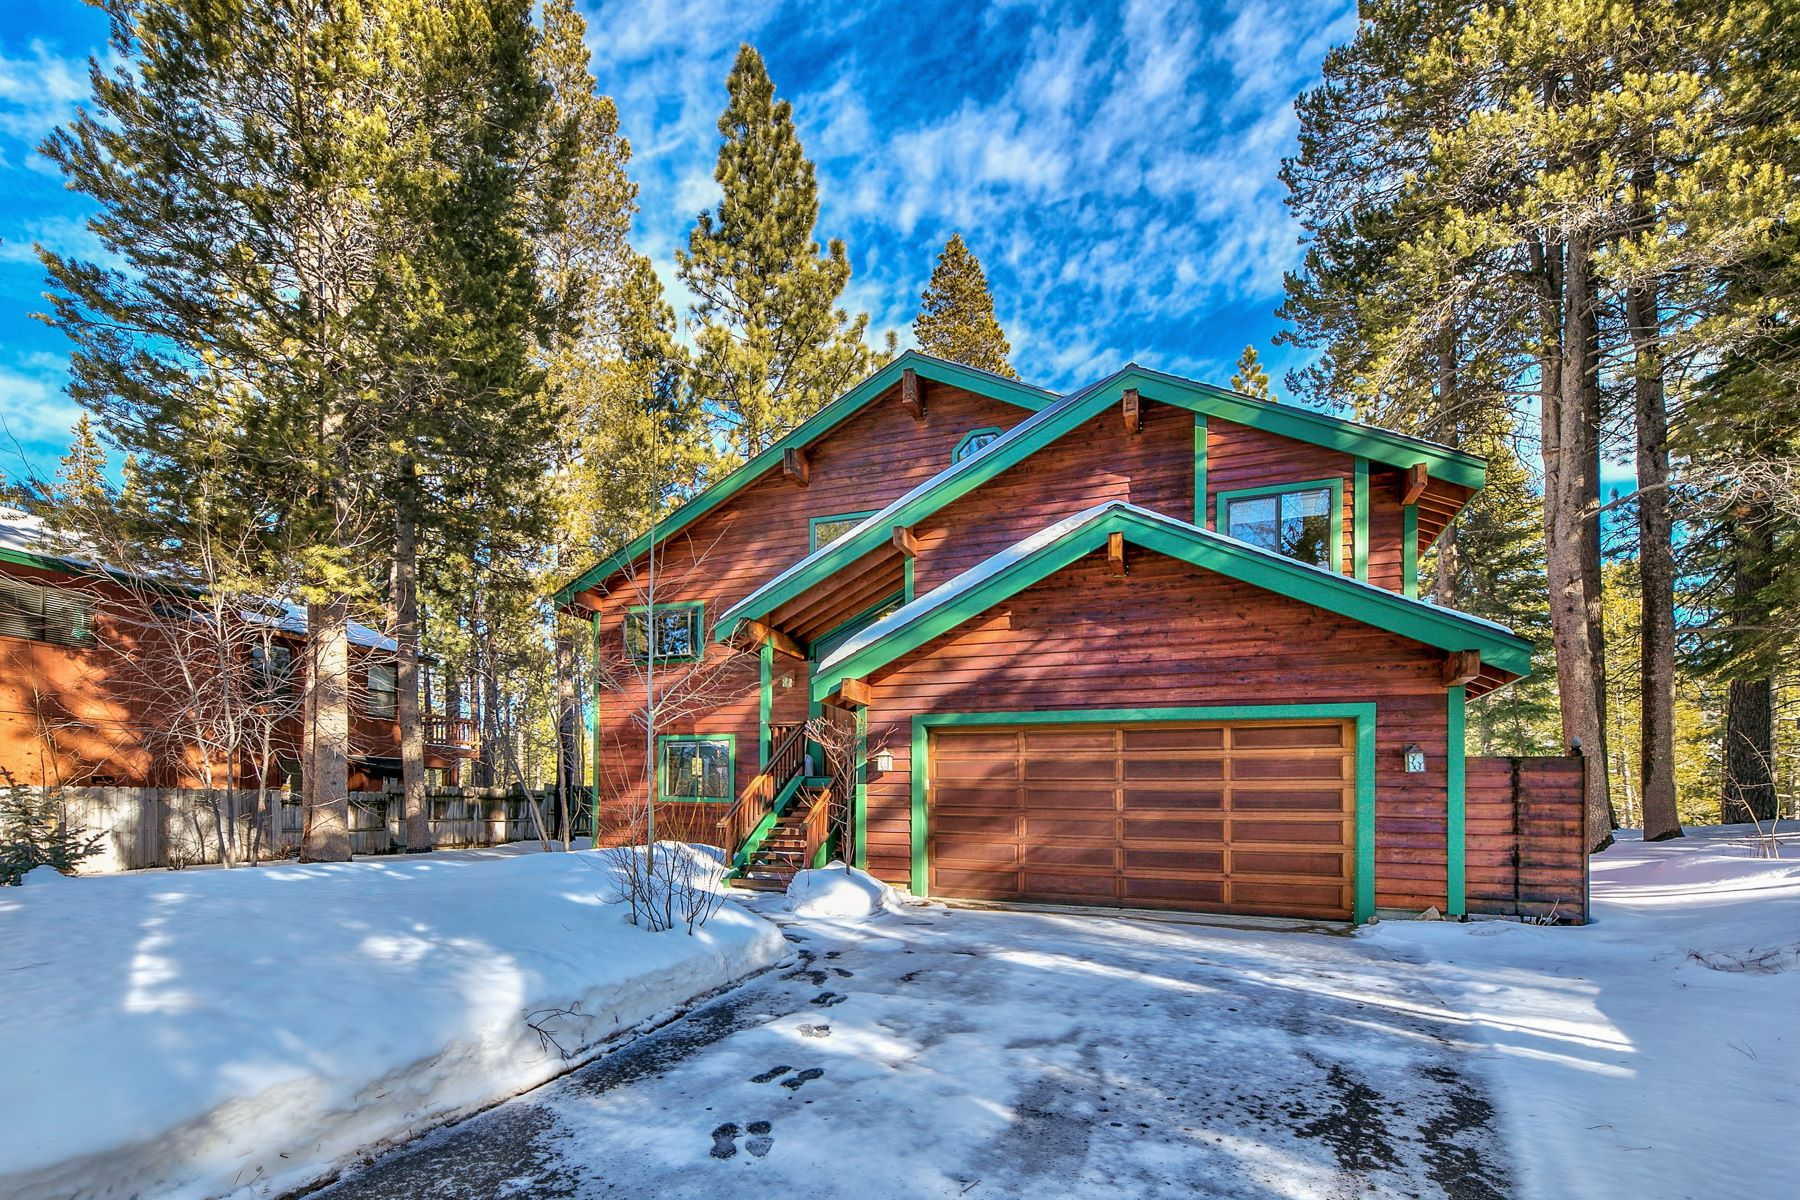 Single Family Homes for Sale at 2129 Oaxaco Street, South Lake Tahoe, CA 2129 Oaxaco Street South Lake Tahoe, California 96150 United States